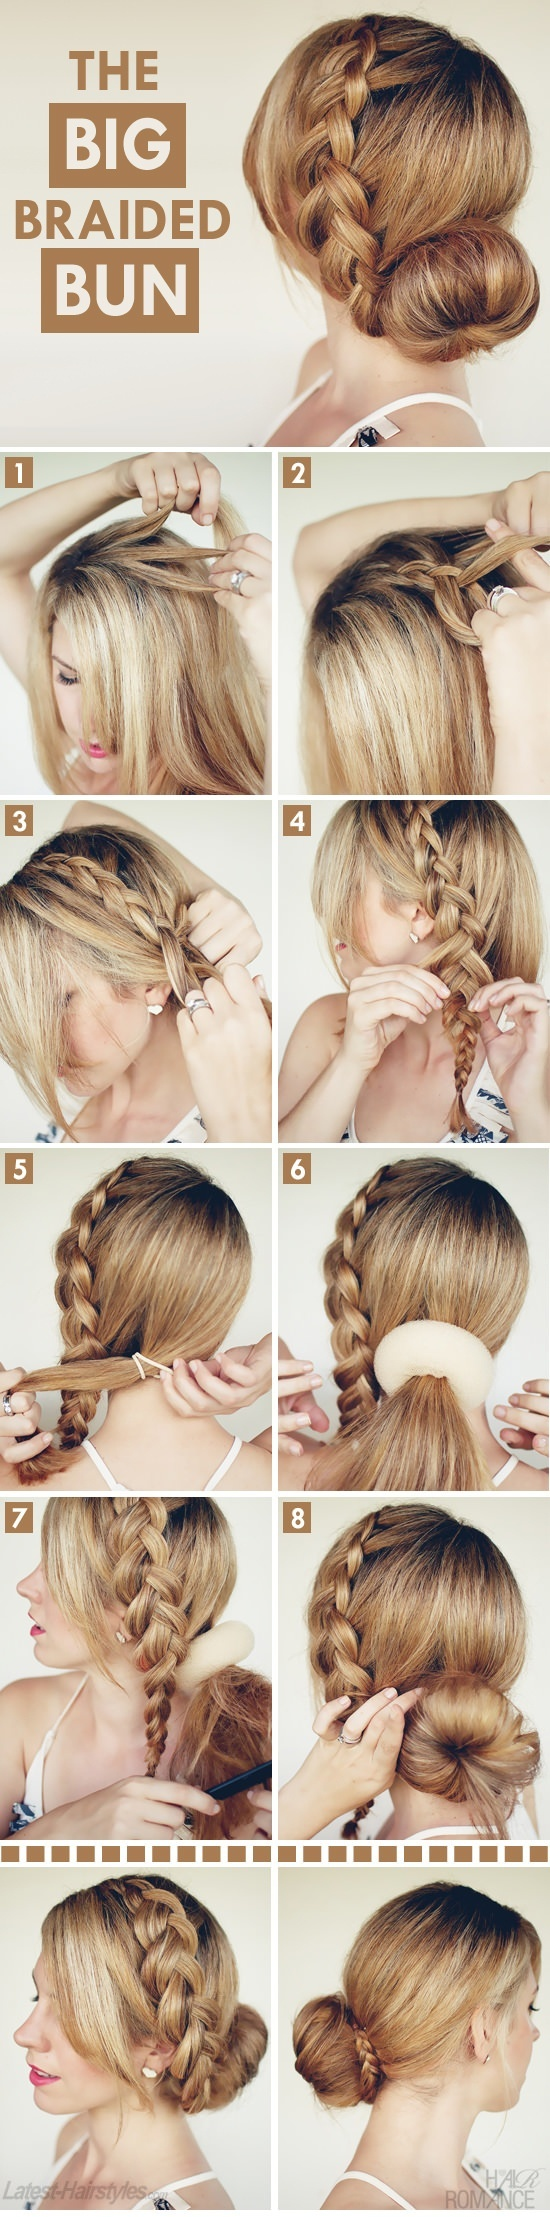 Tuto coiffure coiffures pinterest hair style easy hairstyles